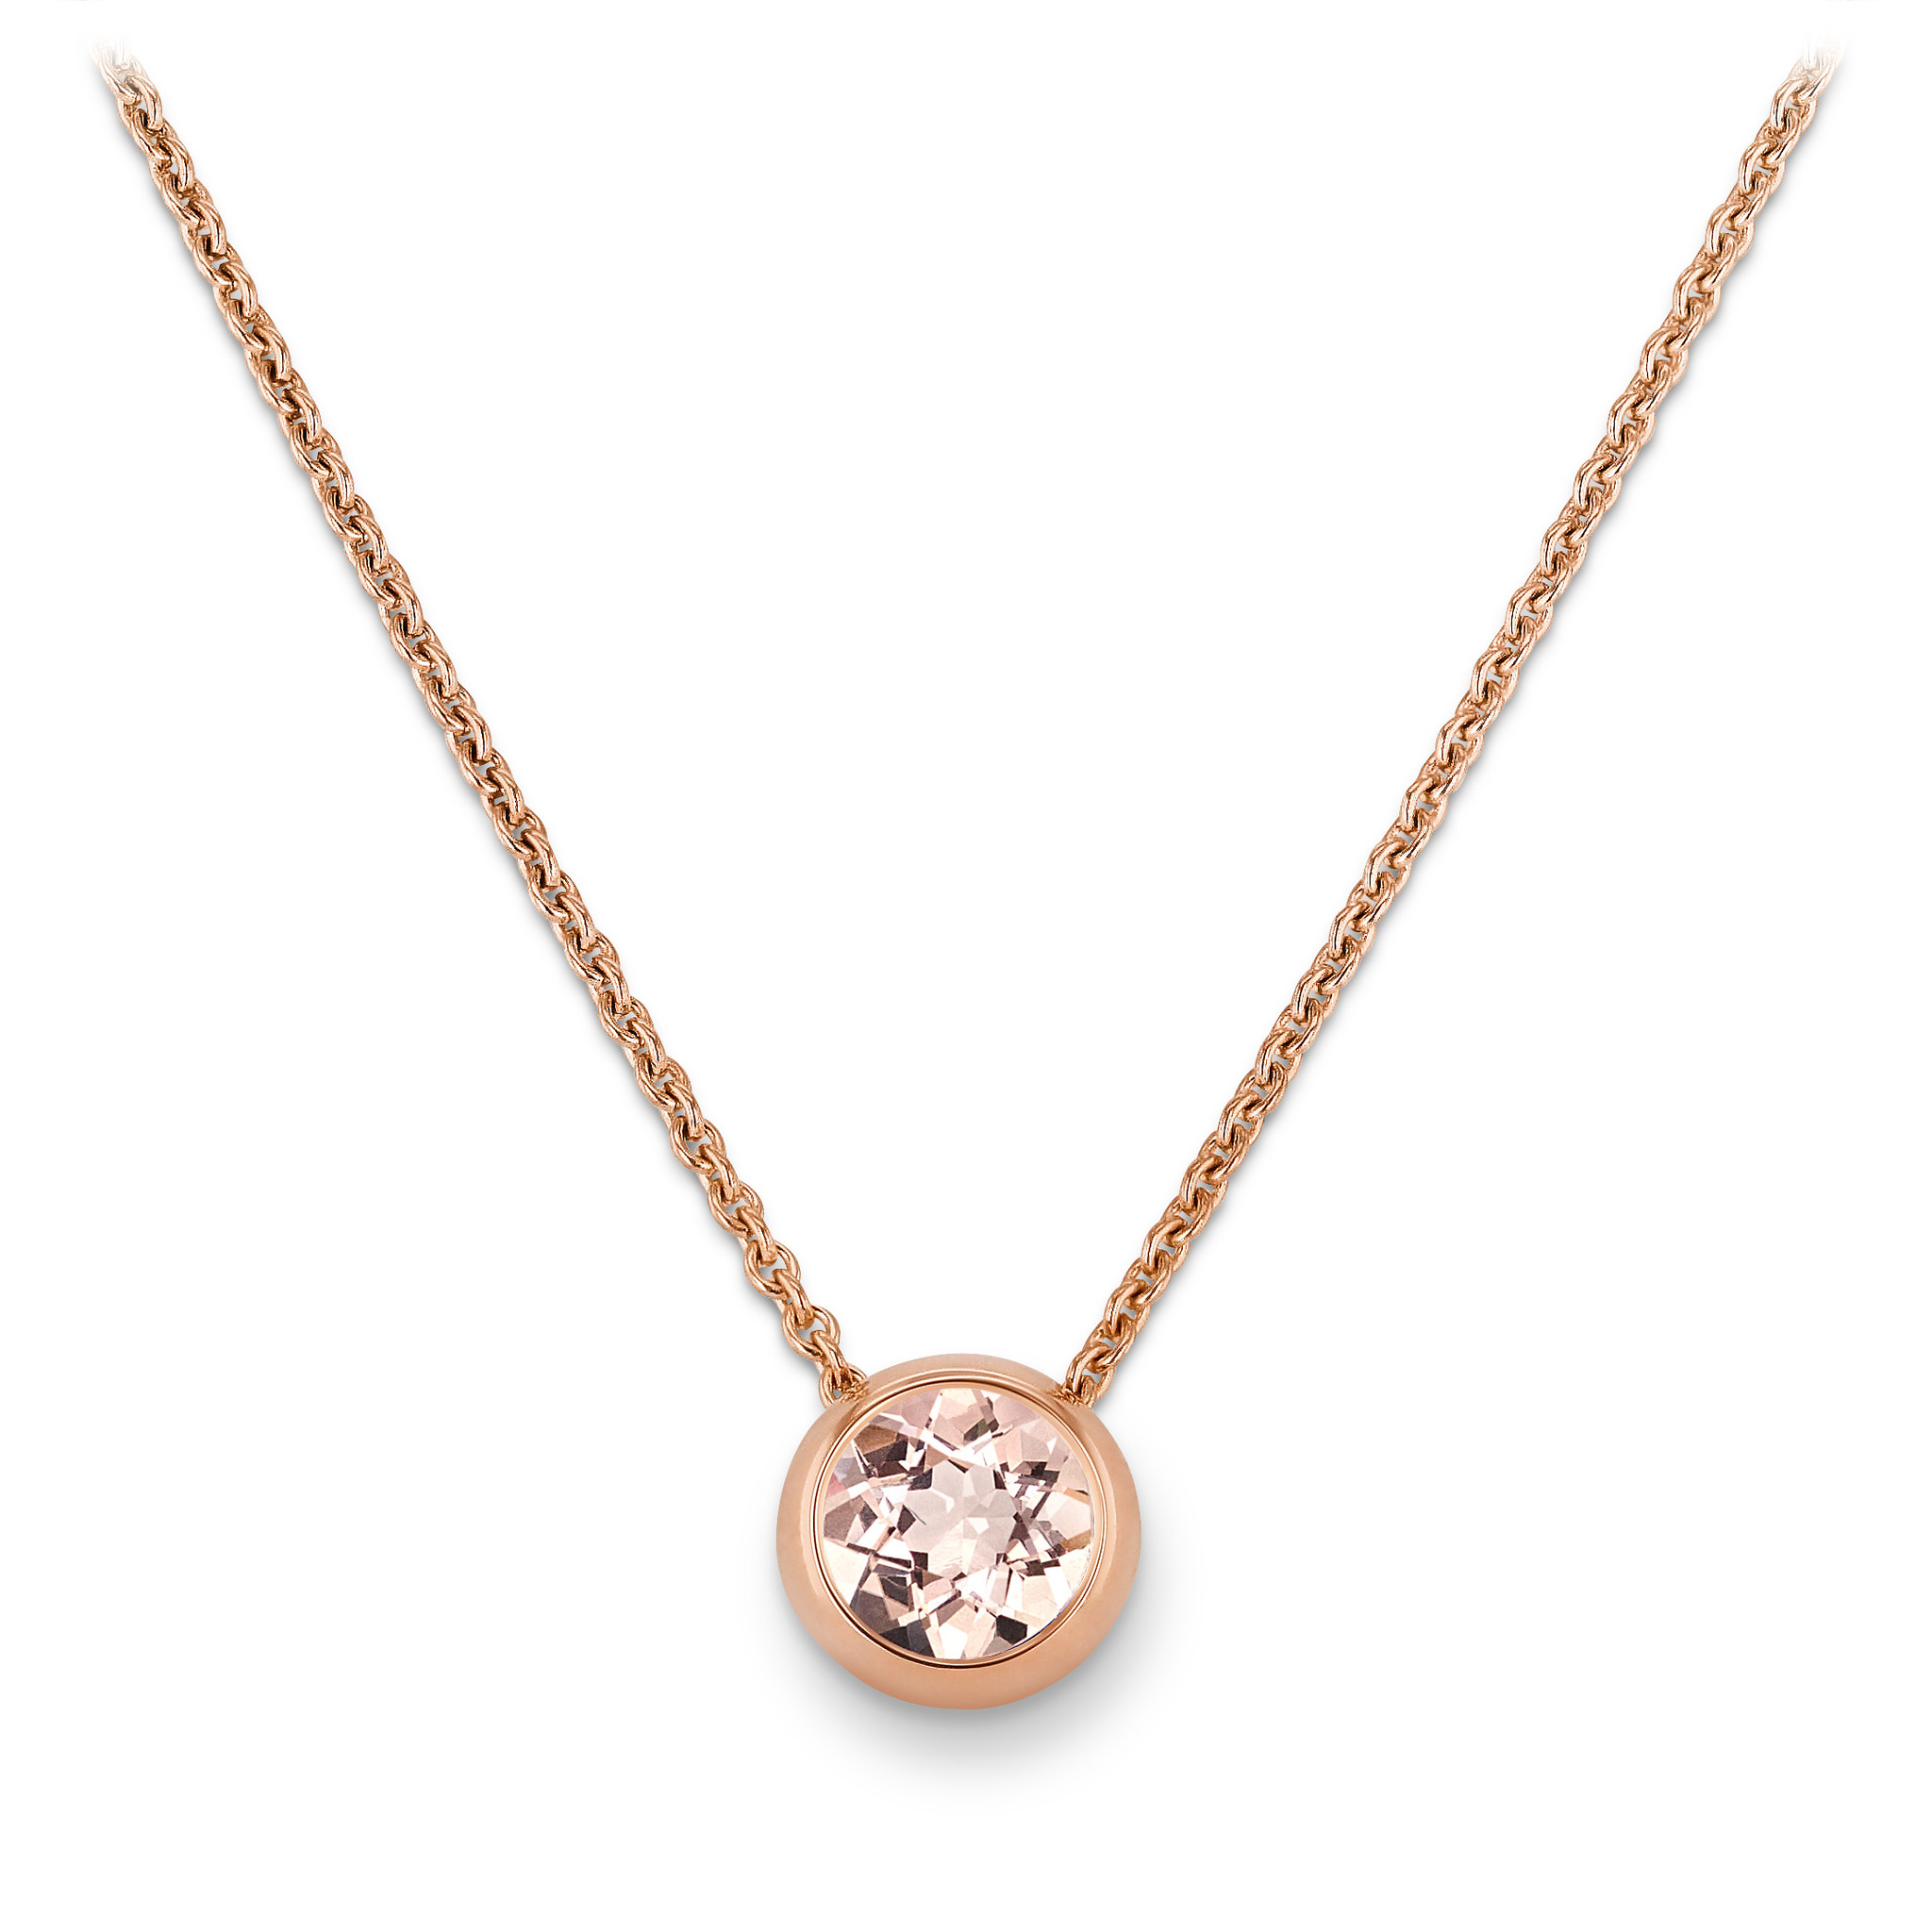 Necklace with morganite